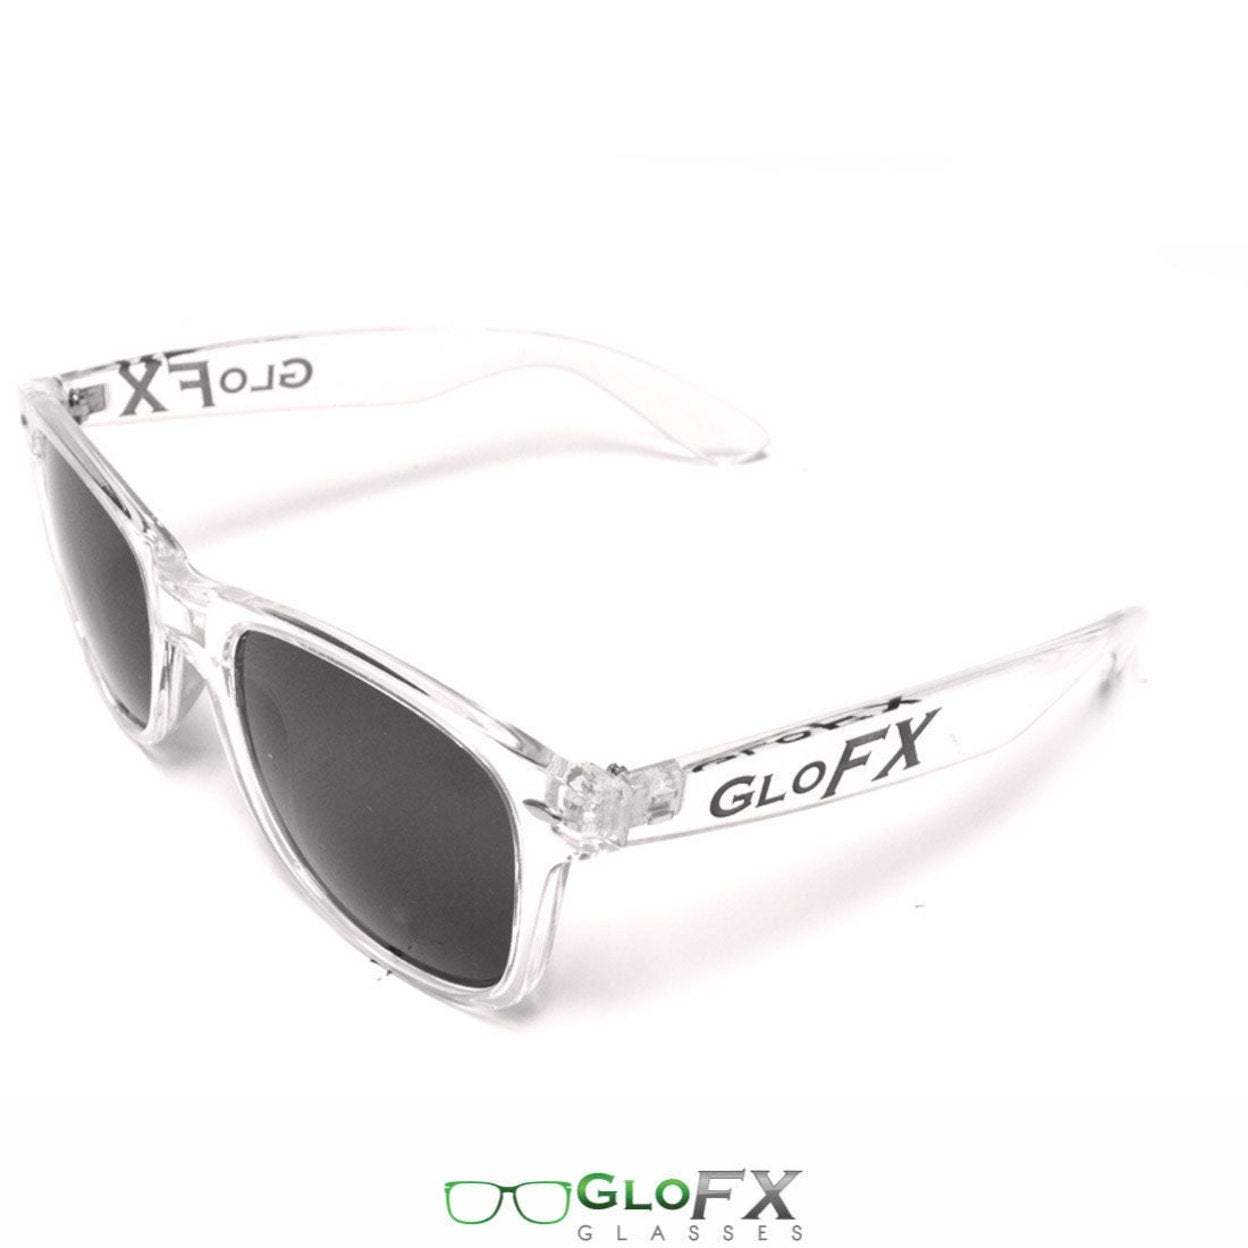 f9ab43c459 Shop GloFX Regular Sunglasses â   Clear Great w  Glowsticks Diffraction  Shades Super Tough Frame Nerd Hipster Raver EDM for Men Women - Free  Shipping On ...